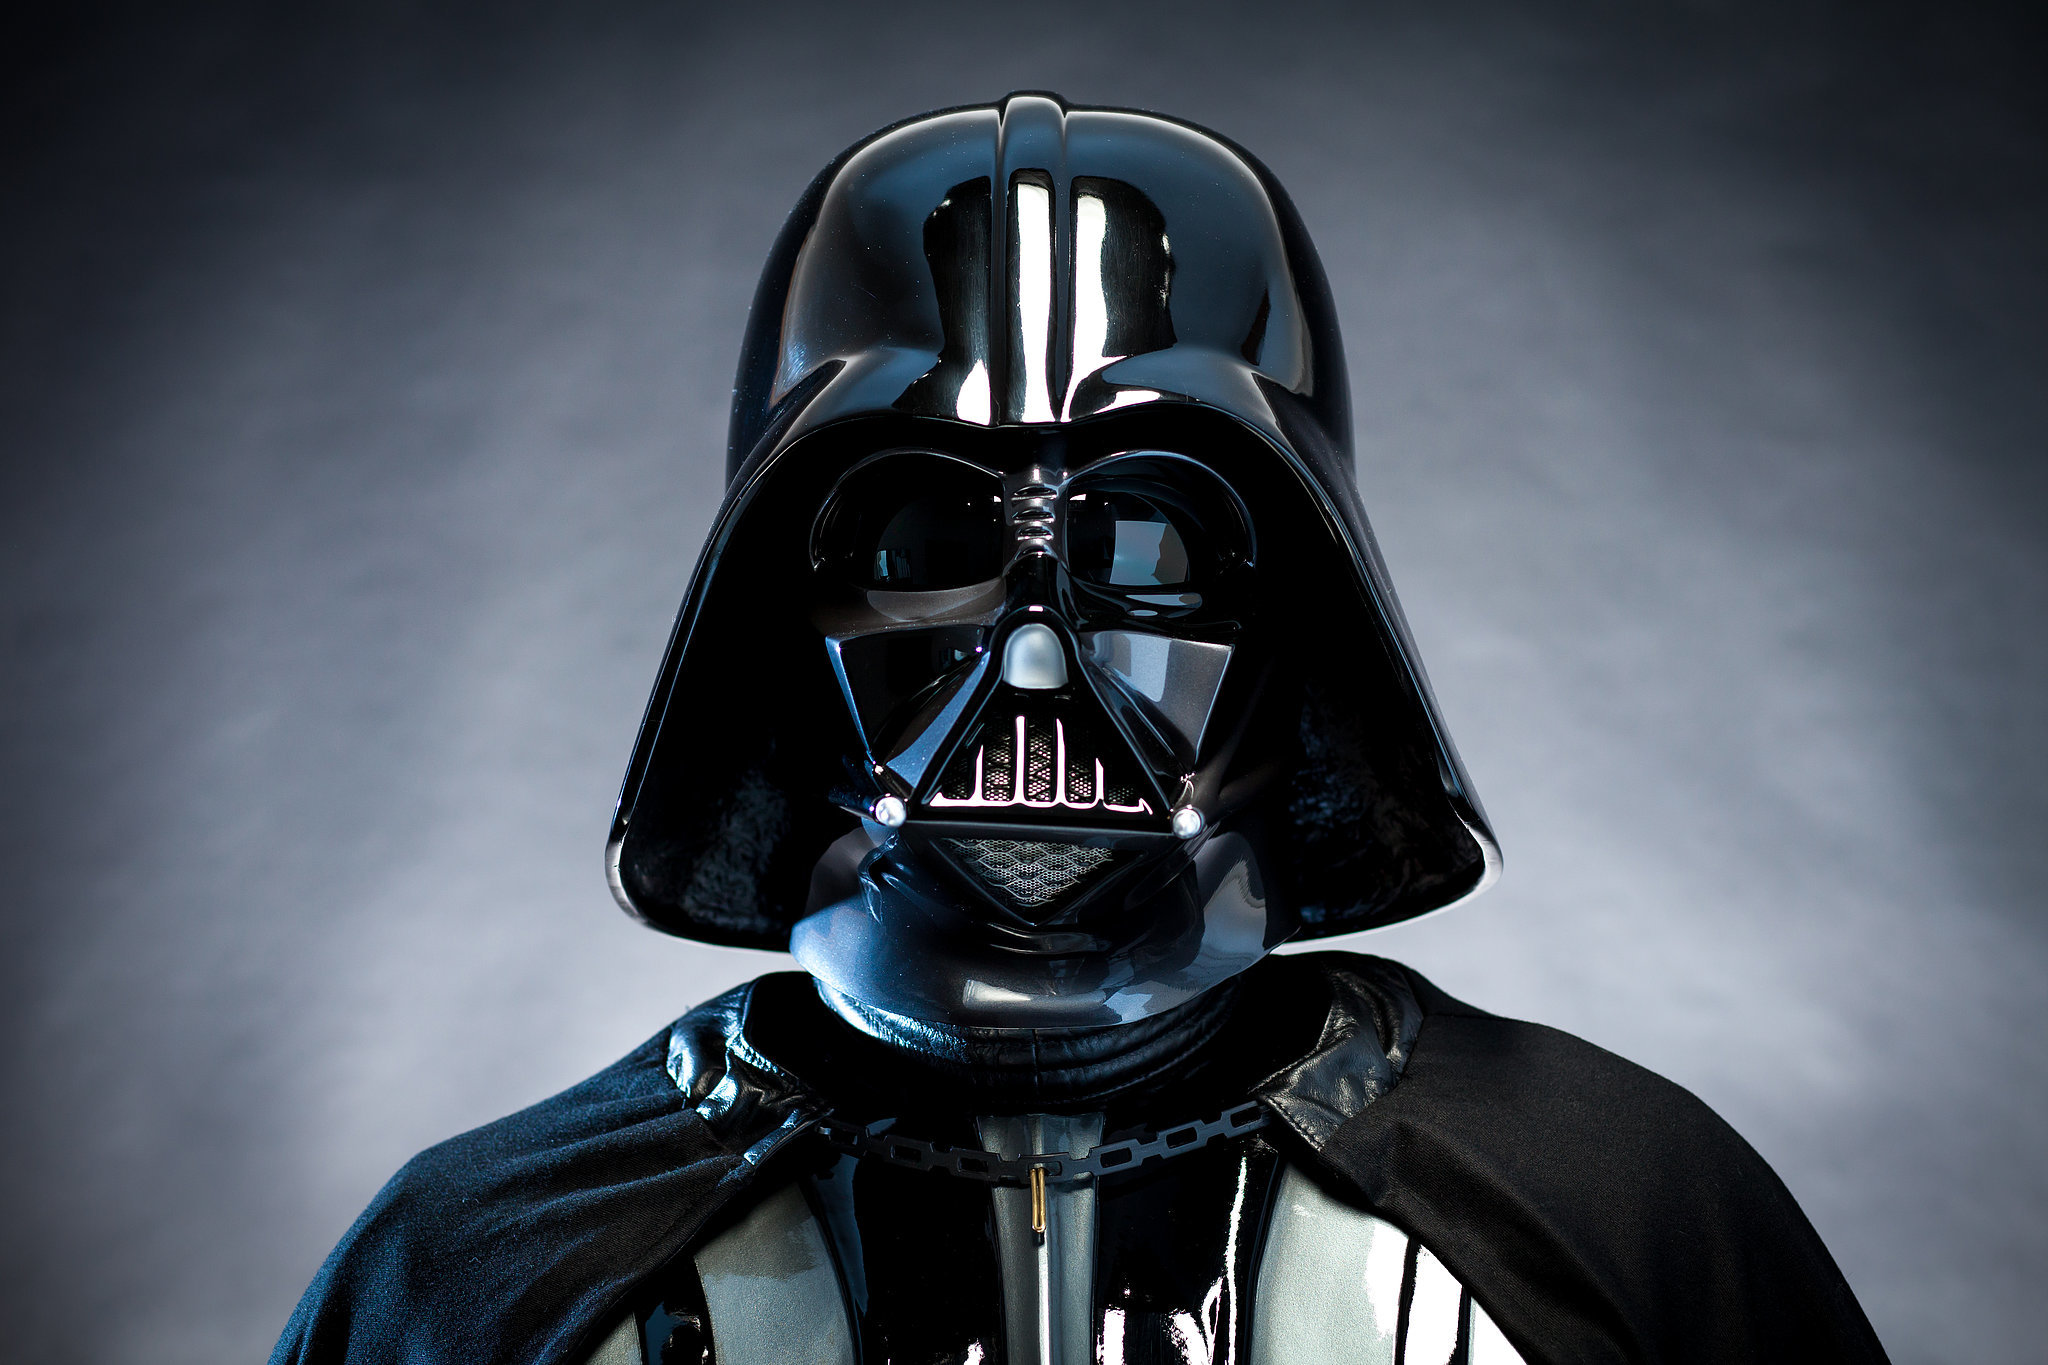 https://i2.wp.com/cdn.bgr.com/2015/08/darth-vader.jpg